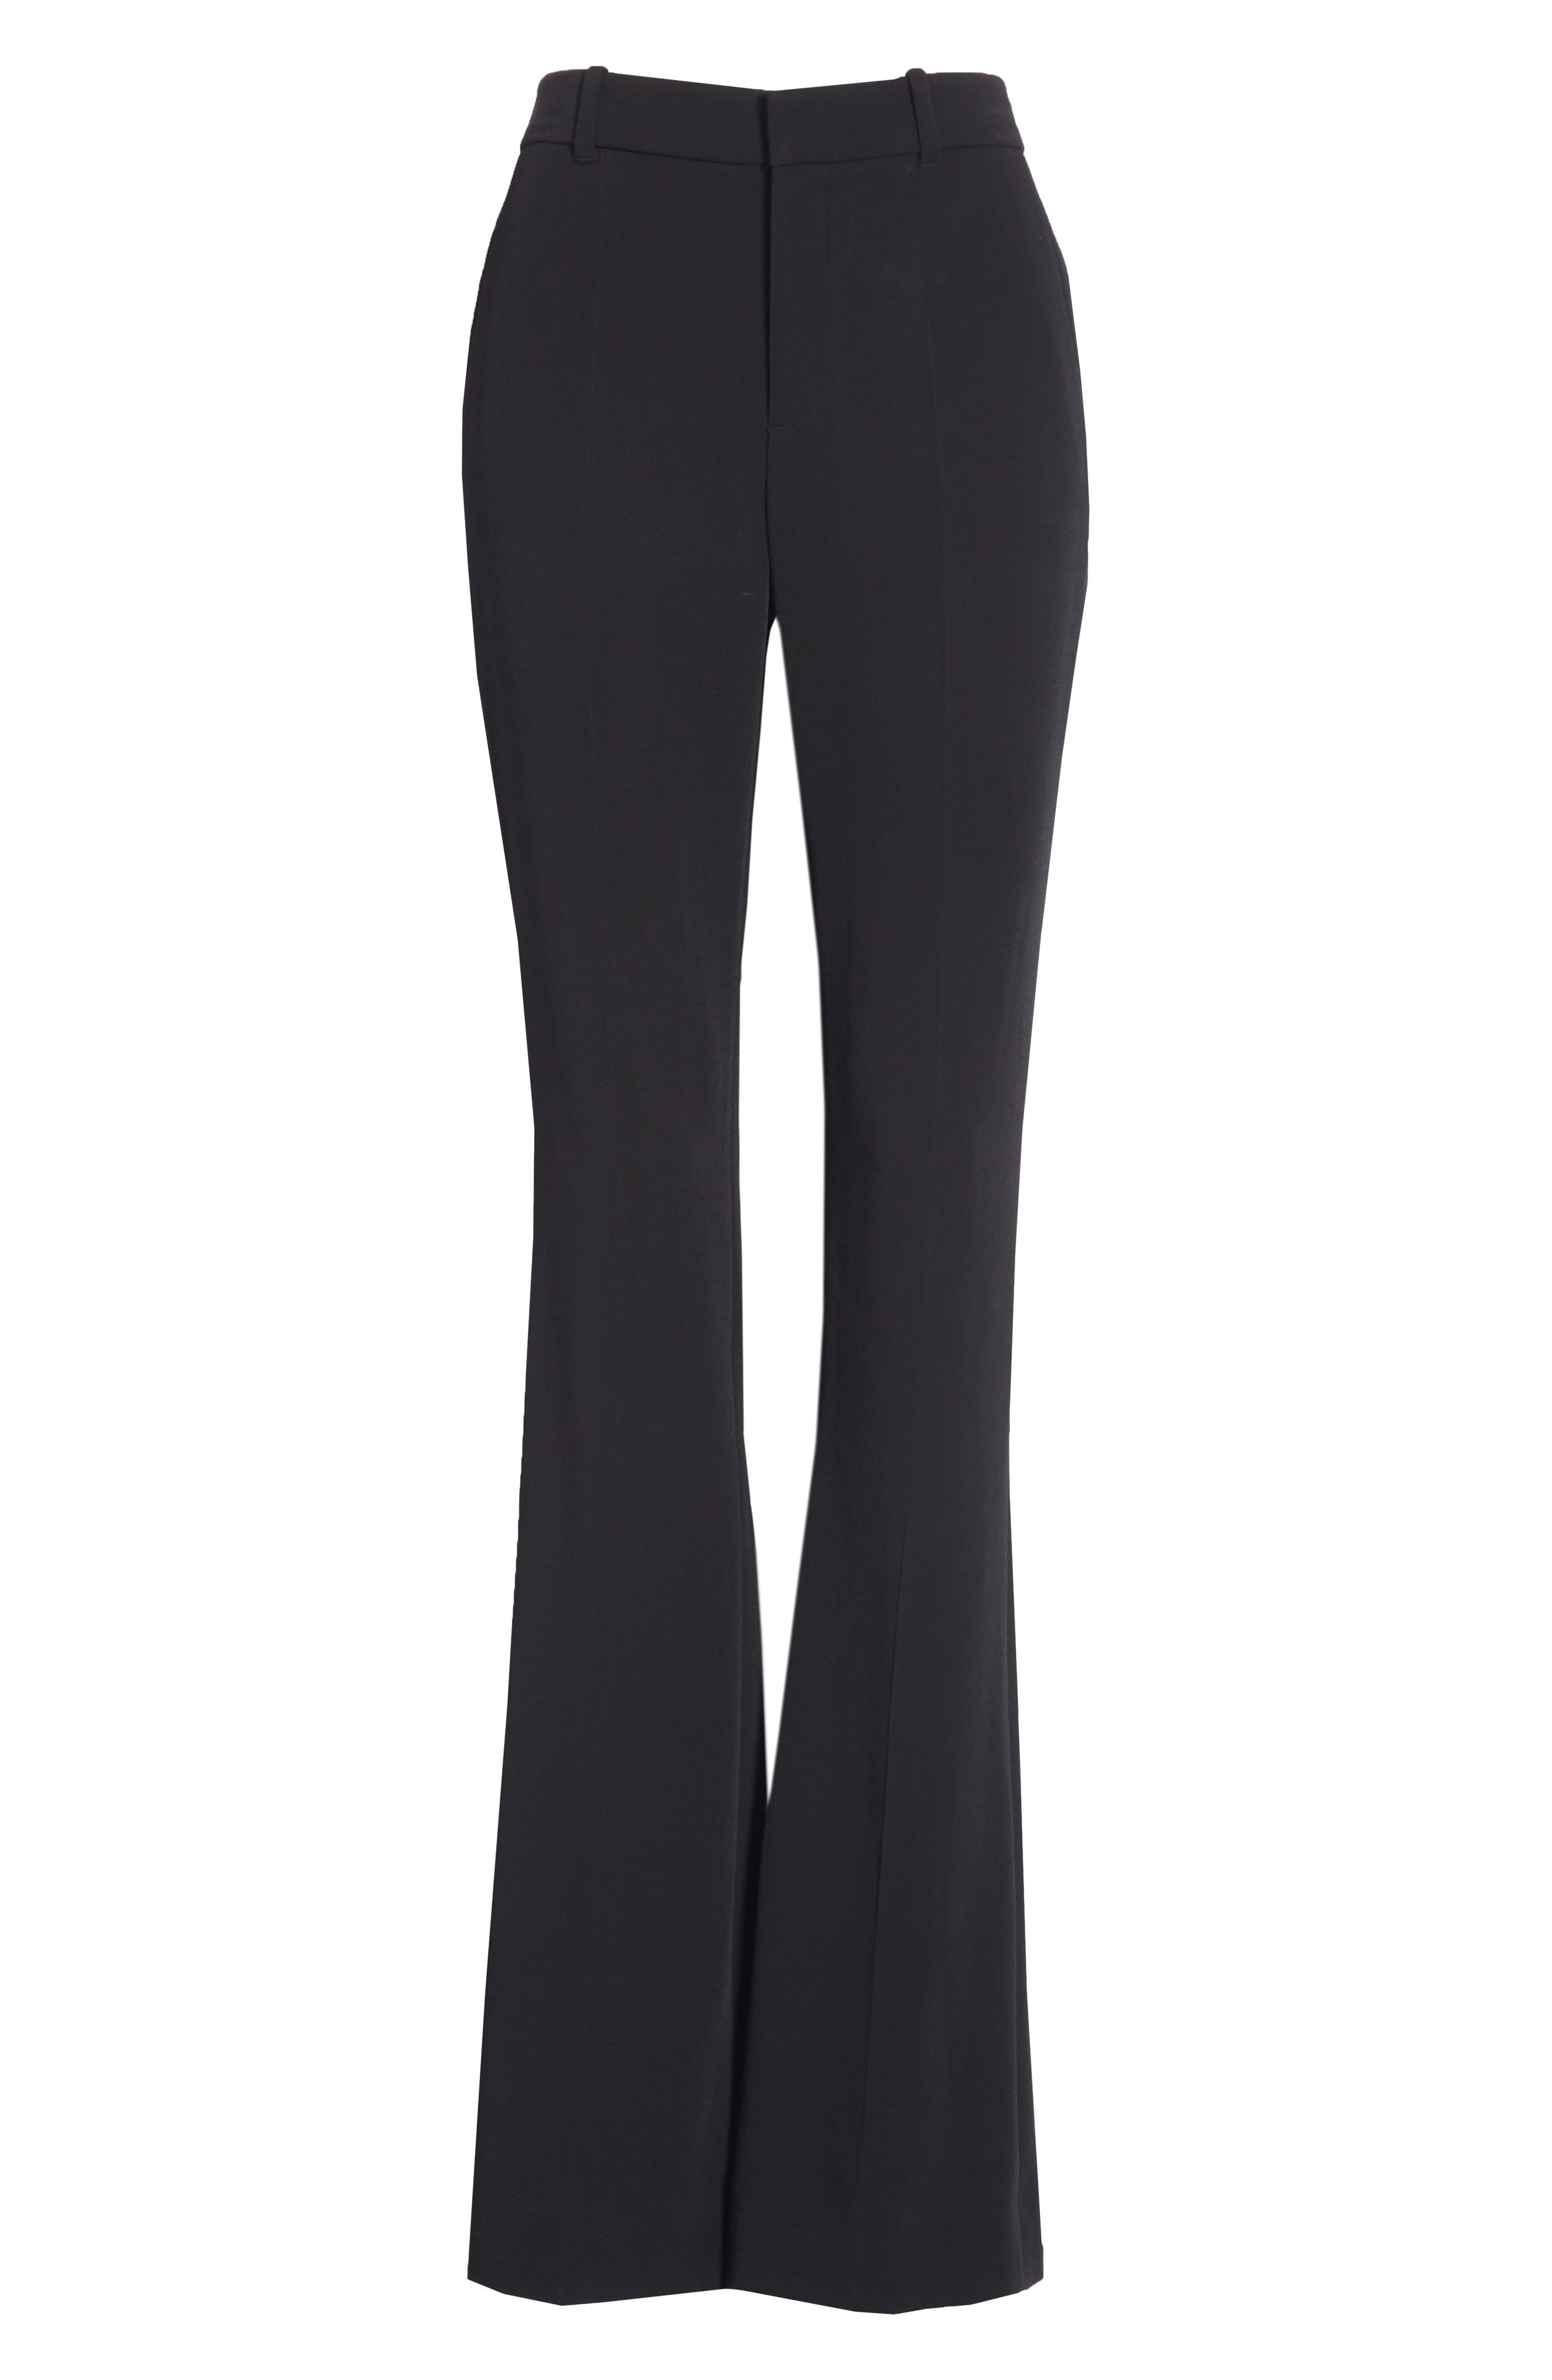 Stretch Cady Skinny Flare Pants,                             Alternate thumbnail 5, color,                             BLACK